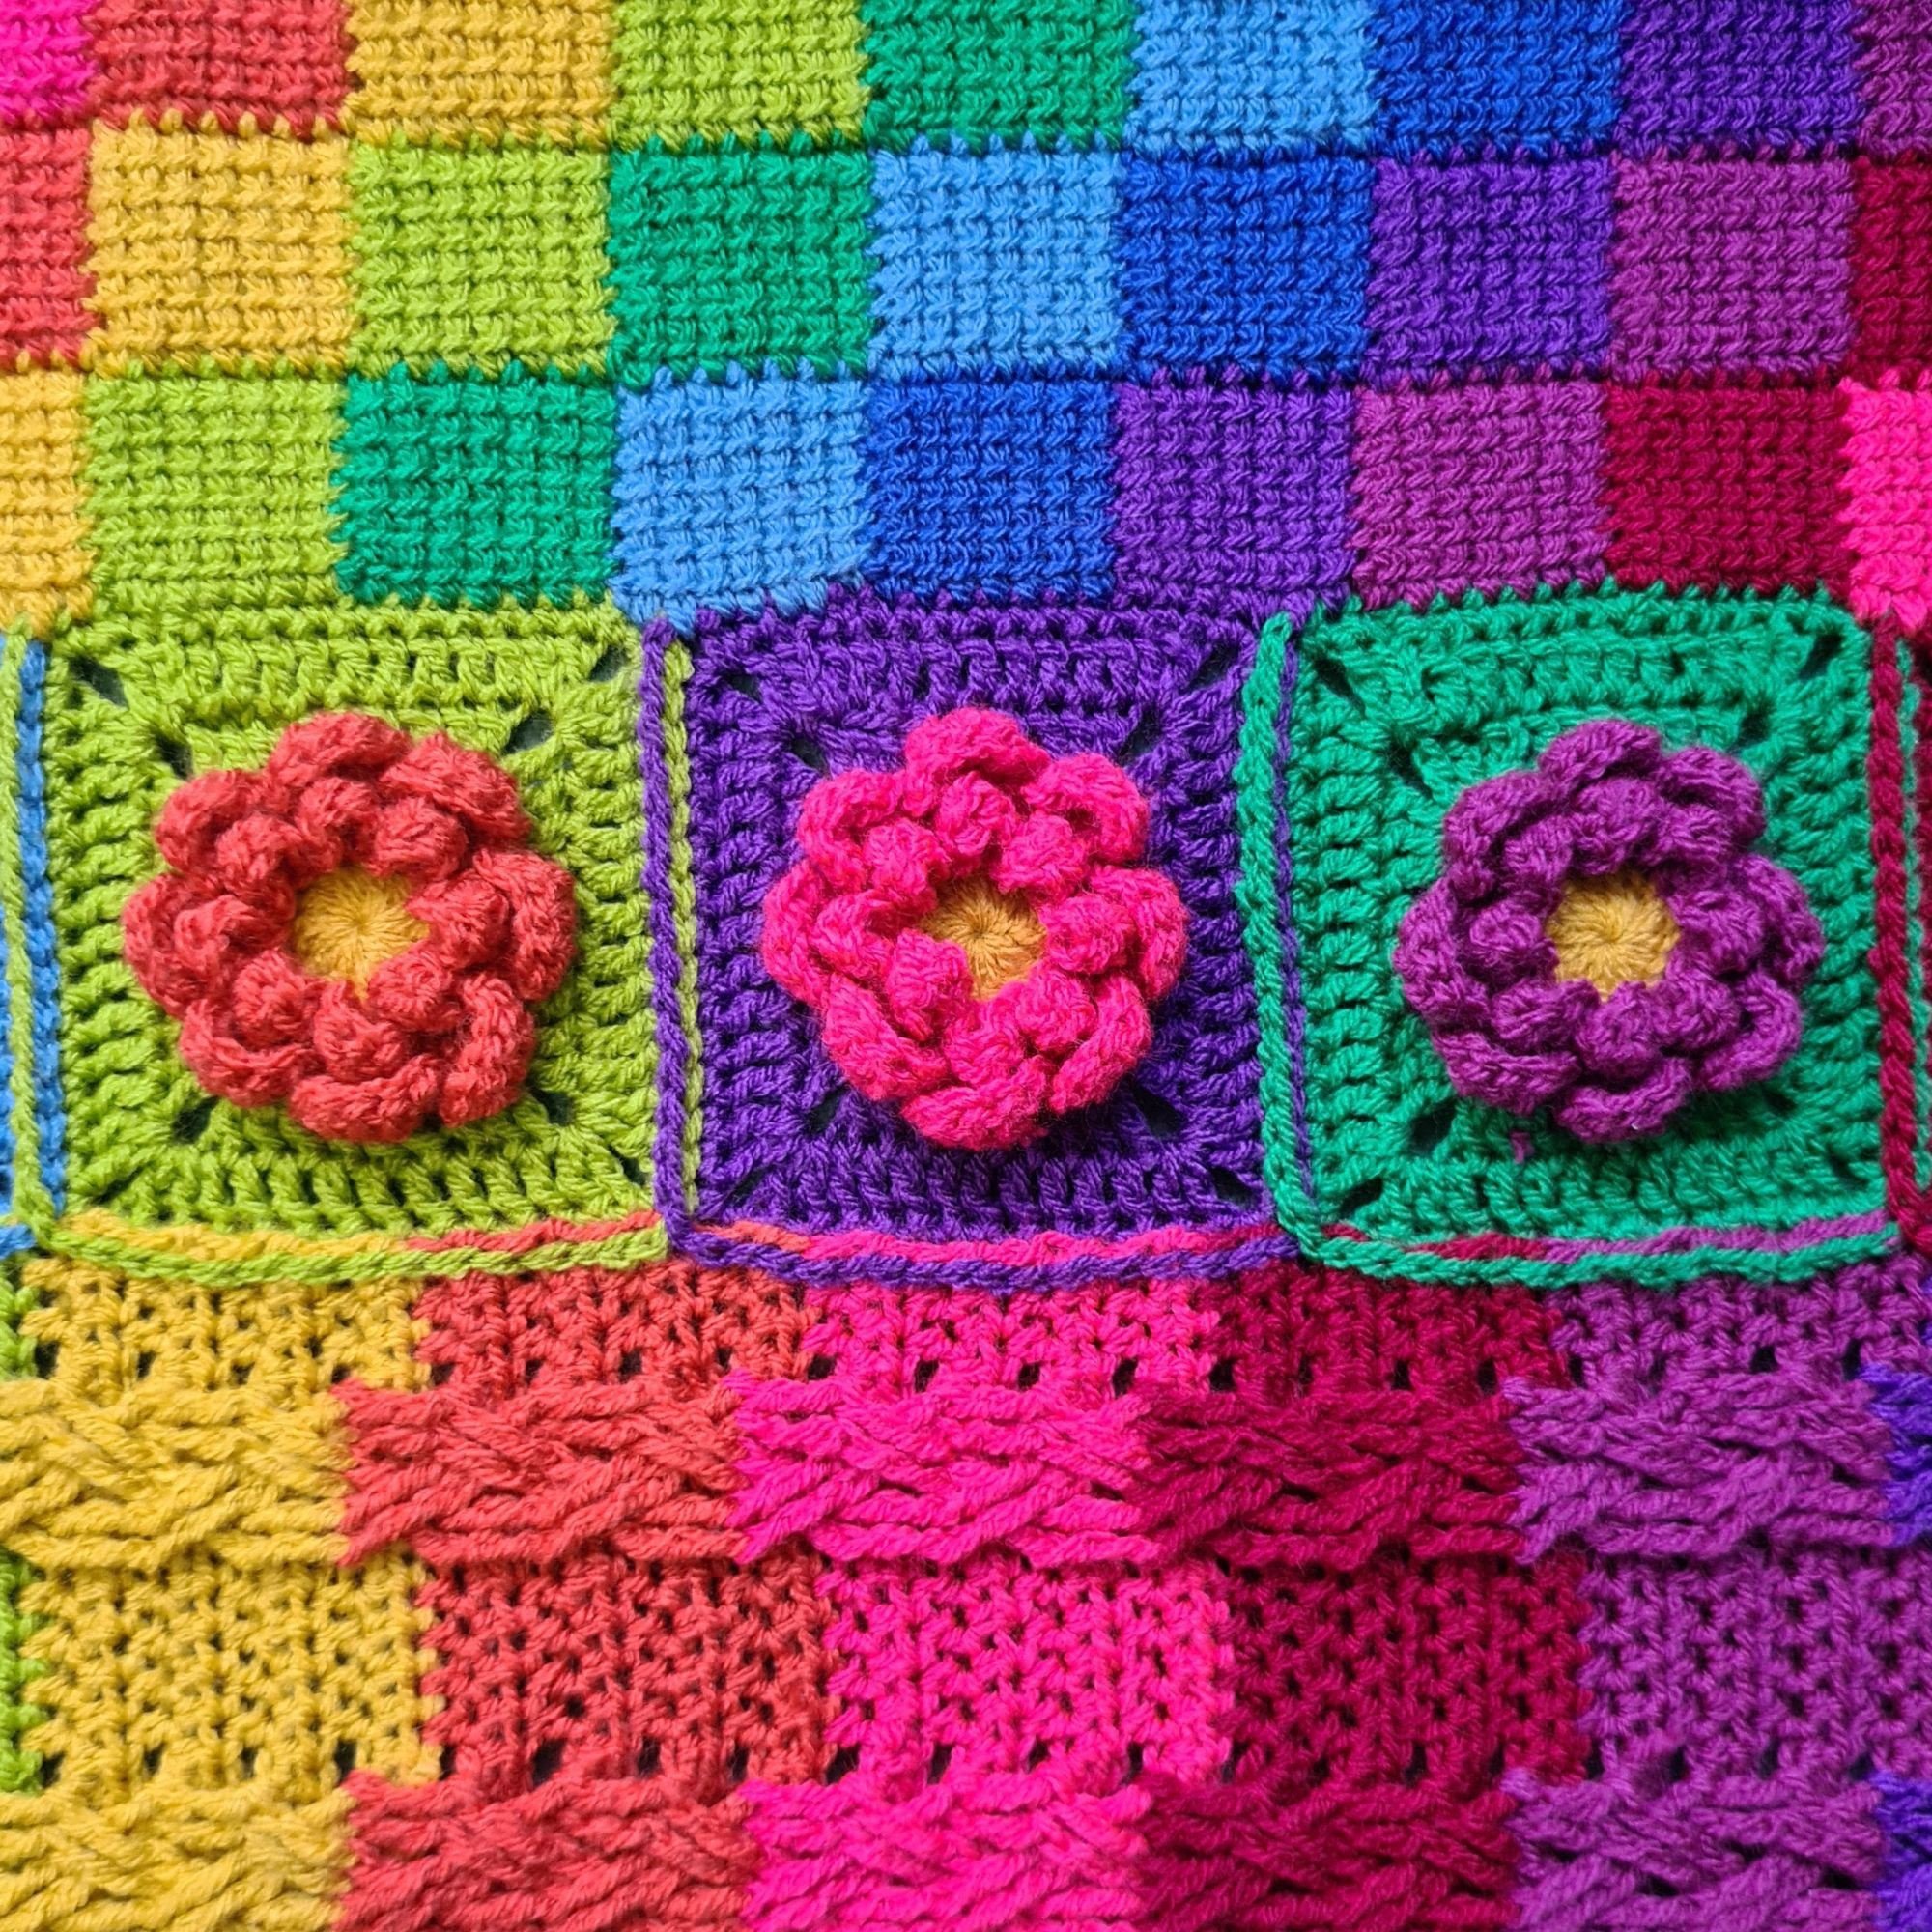 Diana Bensted - Crochet masterclass 7 cables - 8 Flower - 9 Tunisian entrelac.jpg